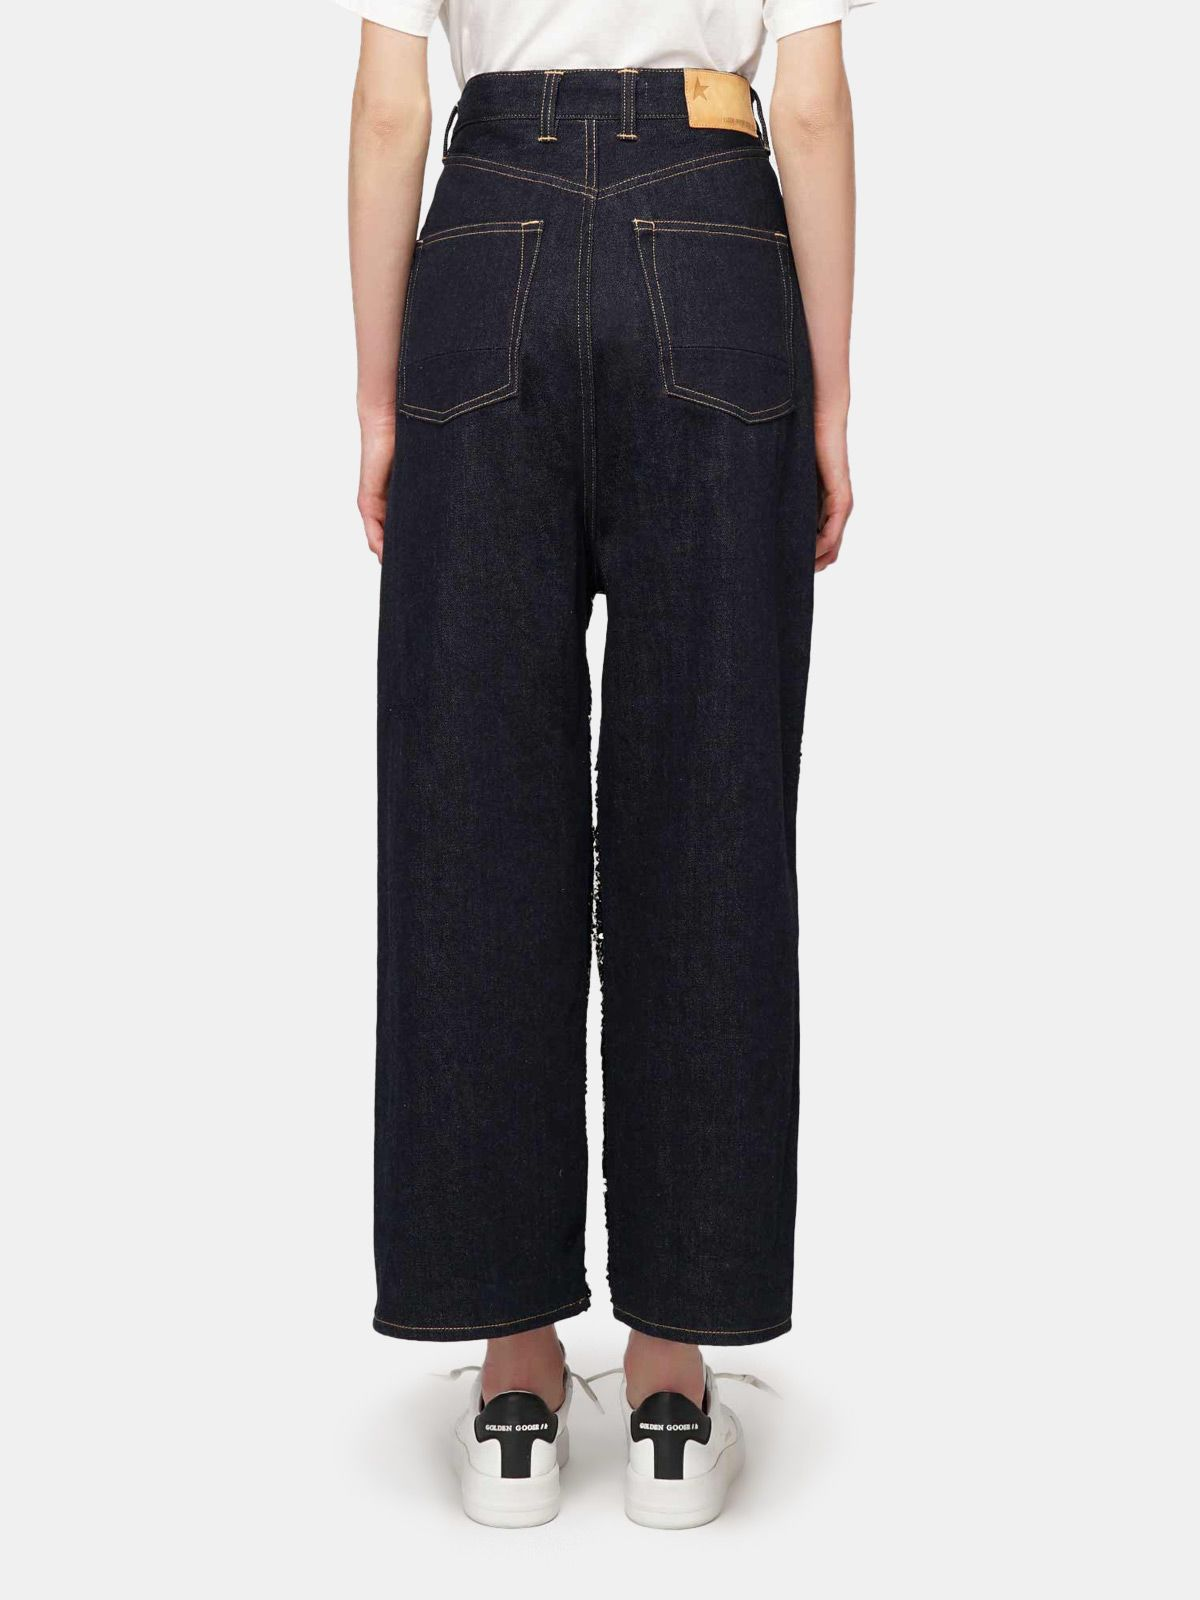 Golden Goose - Breezy trousers with reversible sequins and denim in